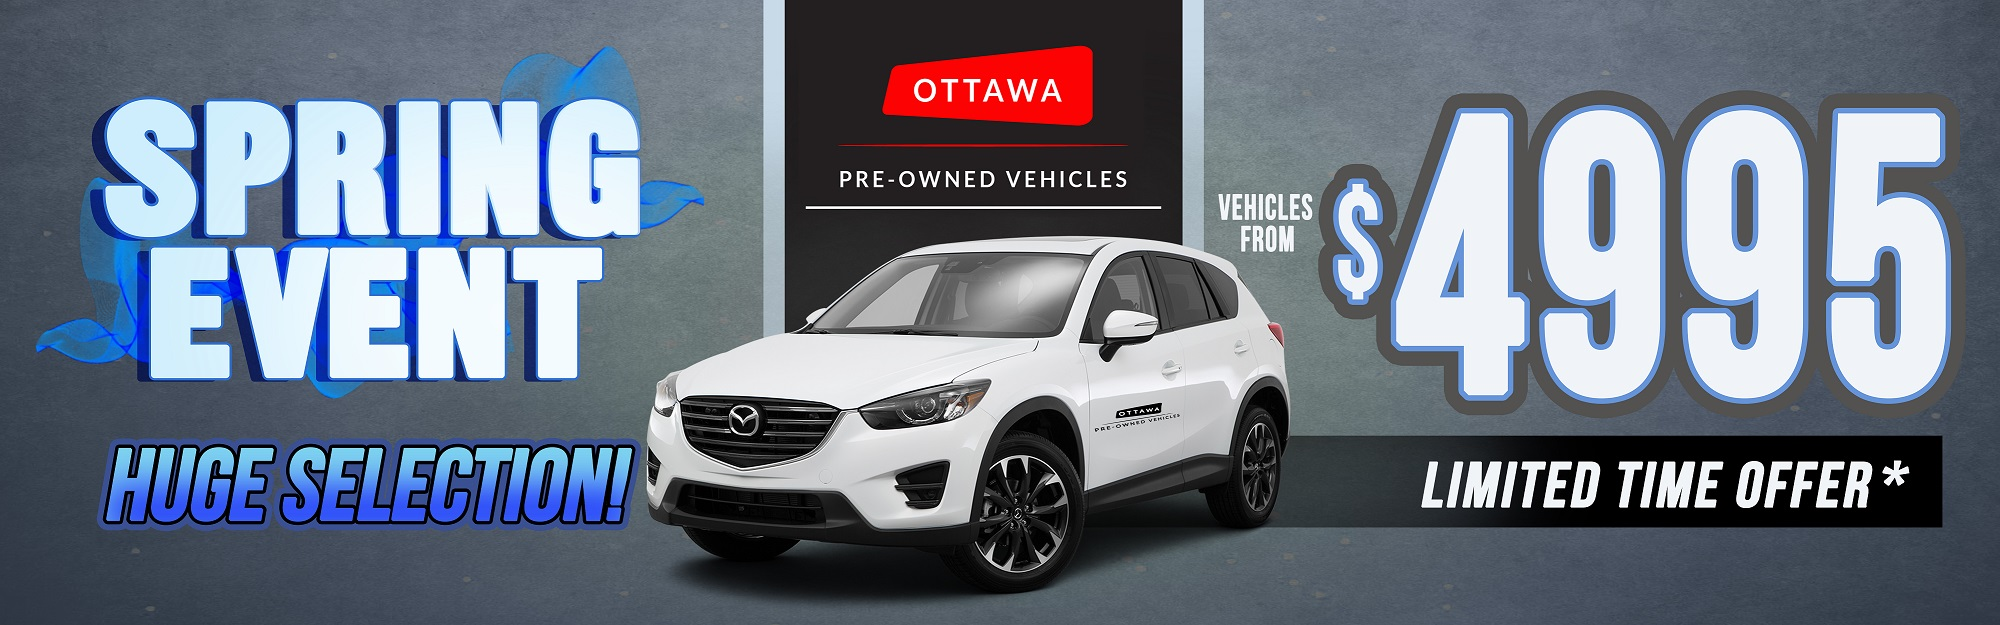 OTTAWA PRE-OWNED VEHICLES